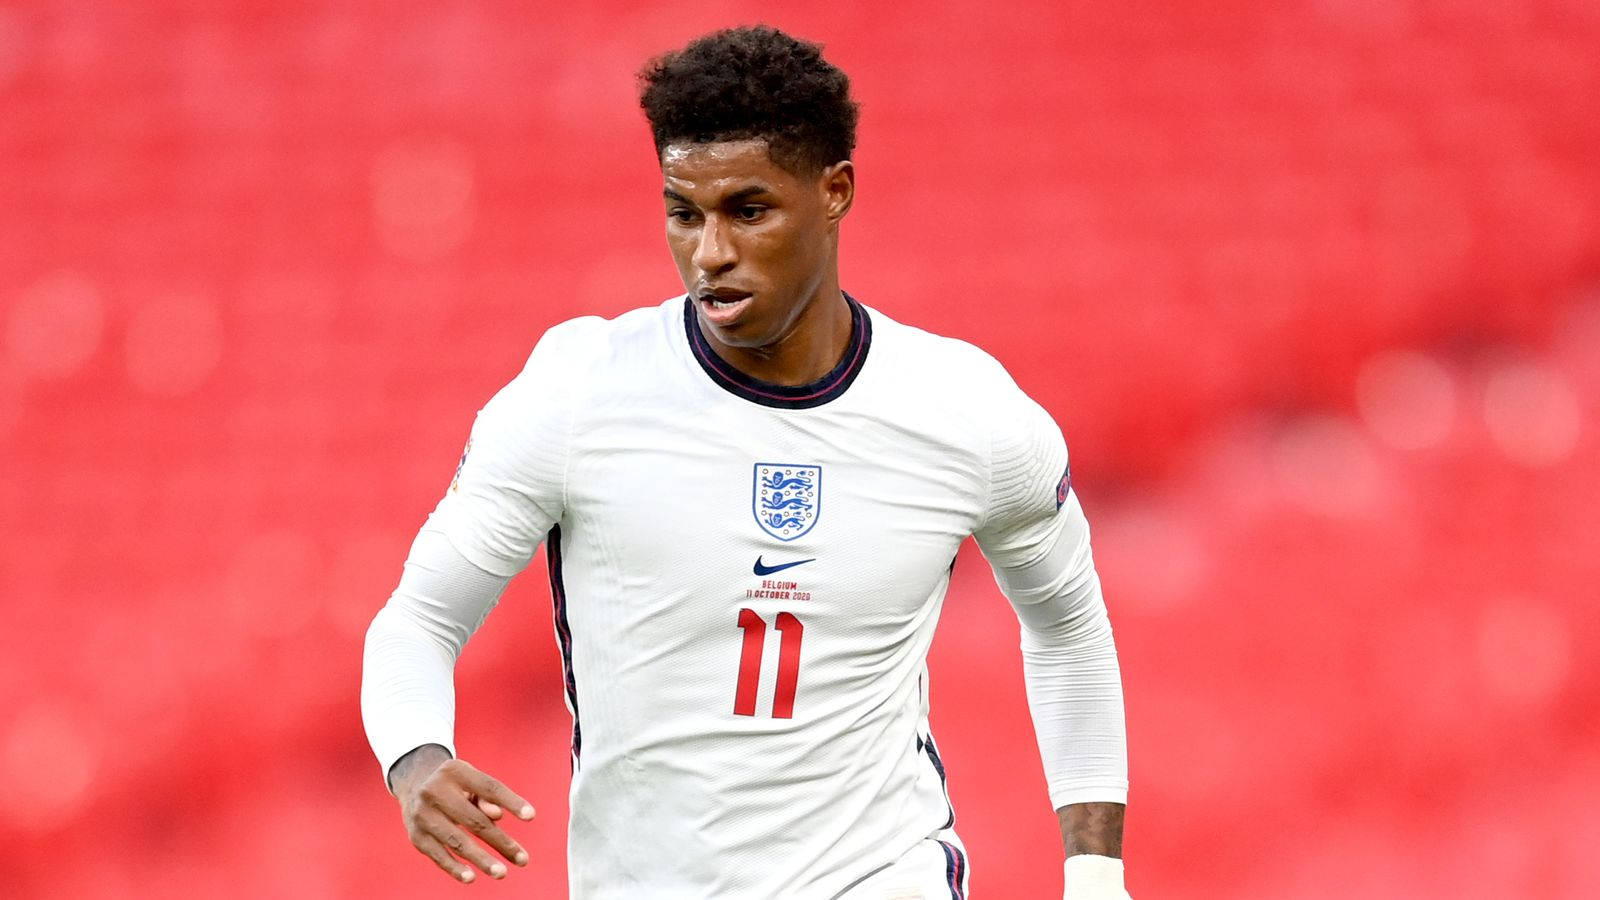 Fresh arrest made over social media racist abuse of England footballers